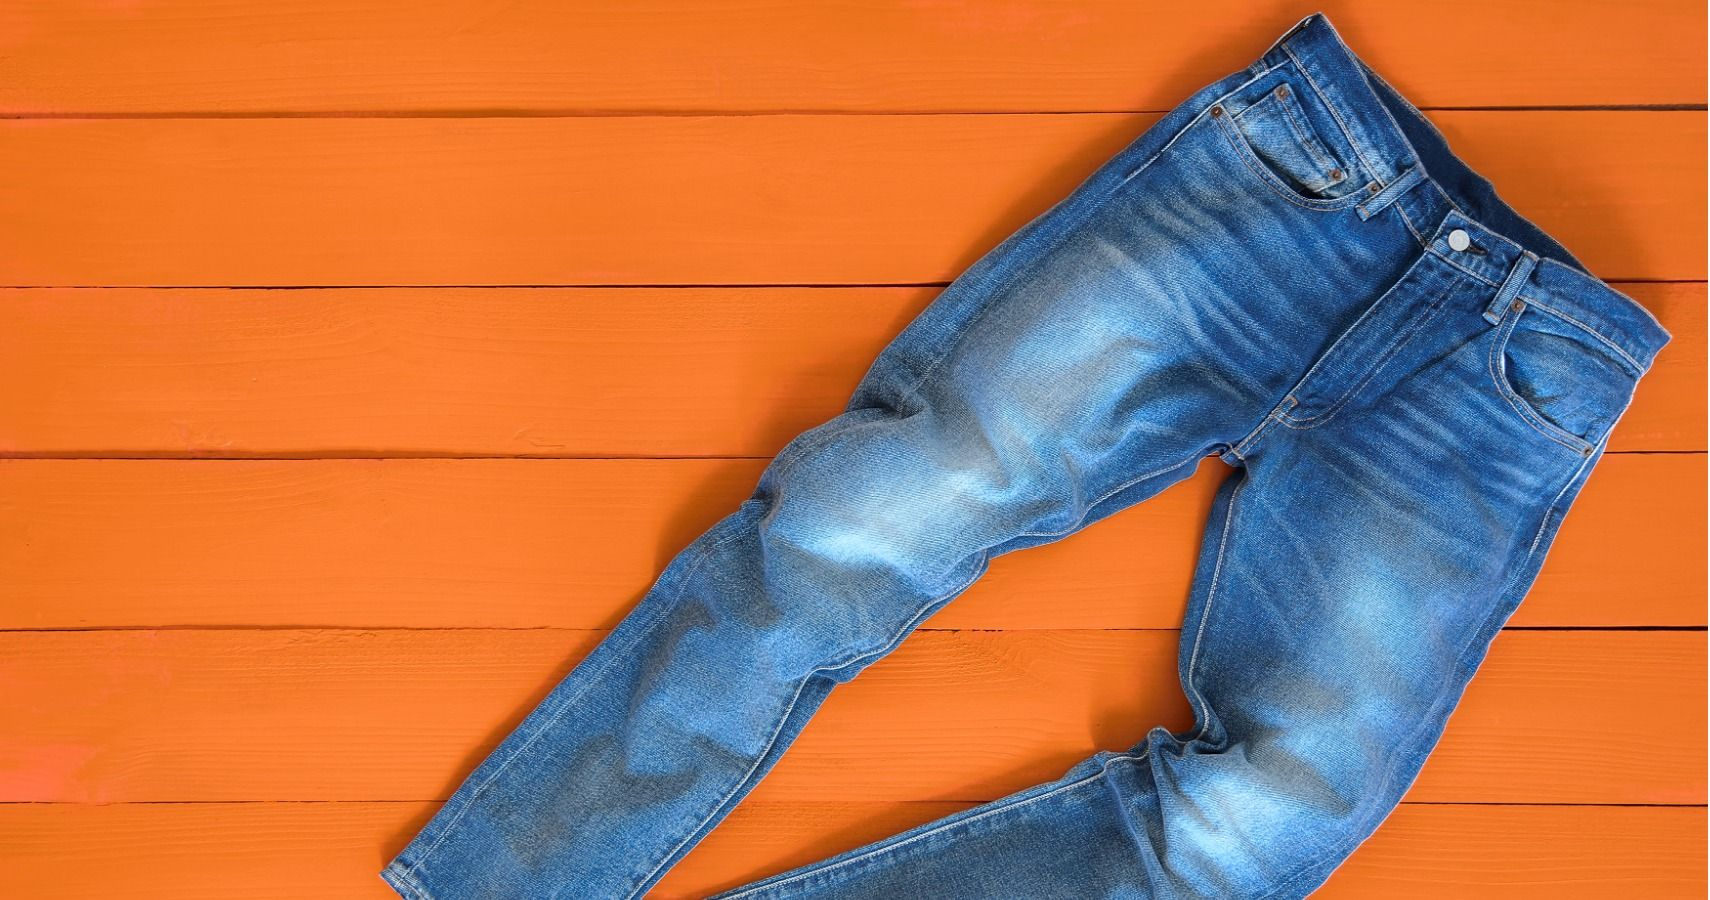 dbc12ce635ab Bootcut Jeans Are Making A Comeback